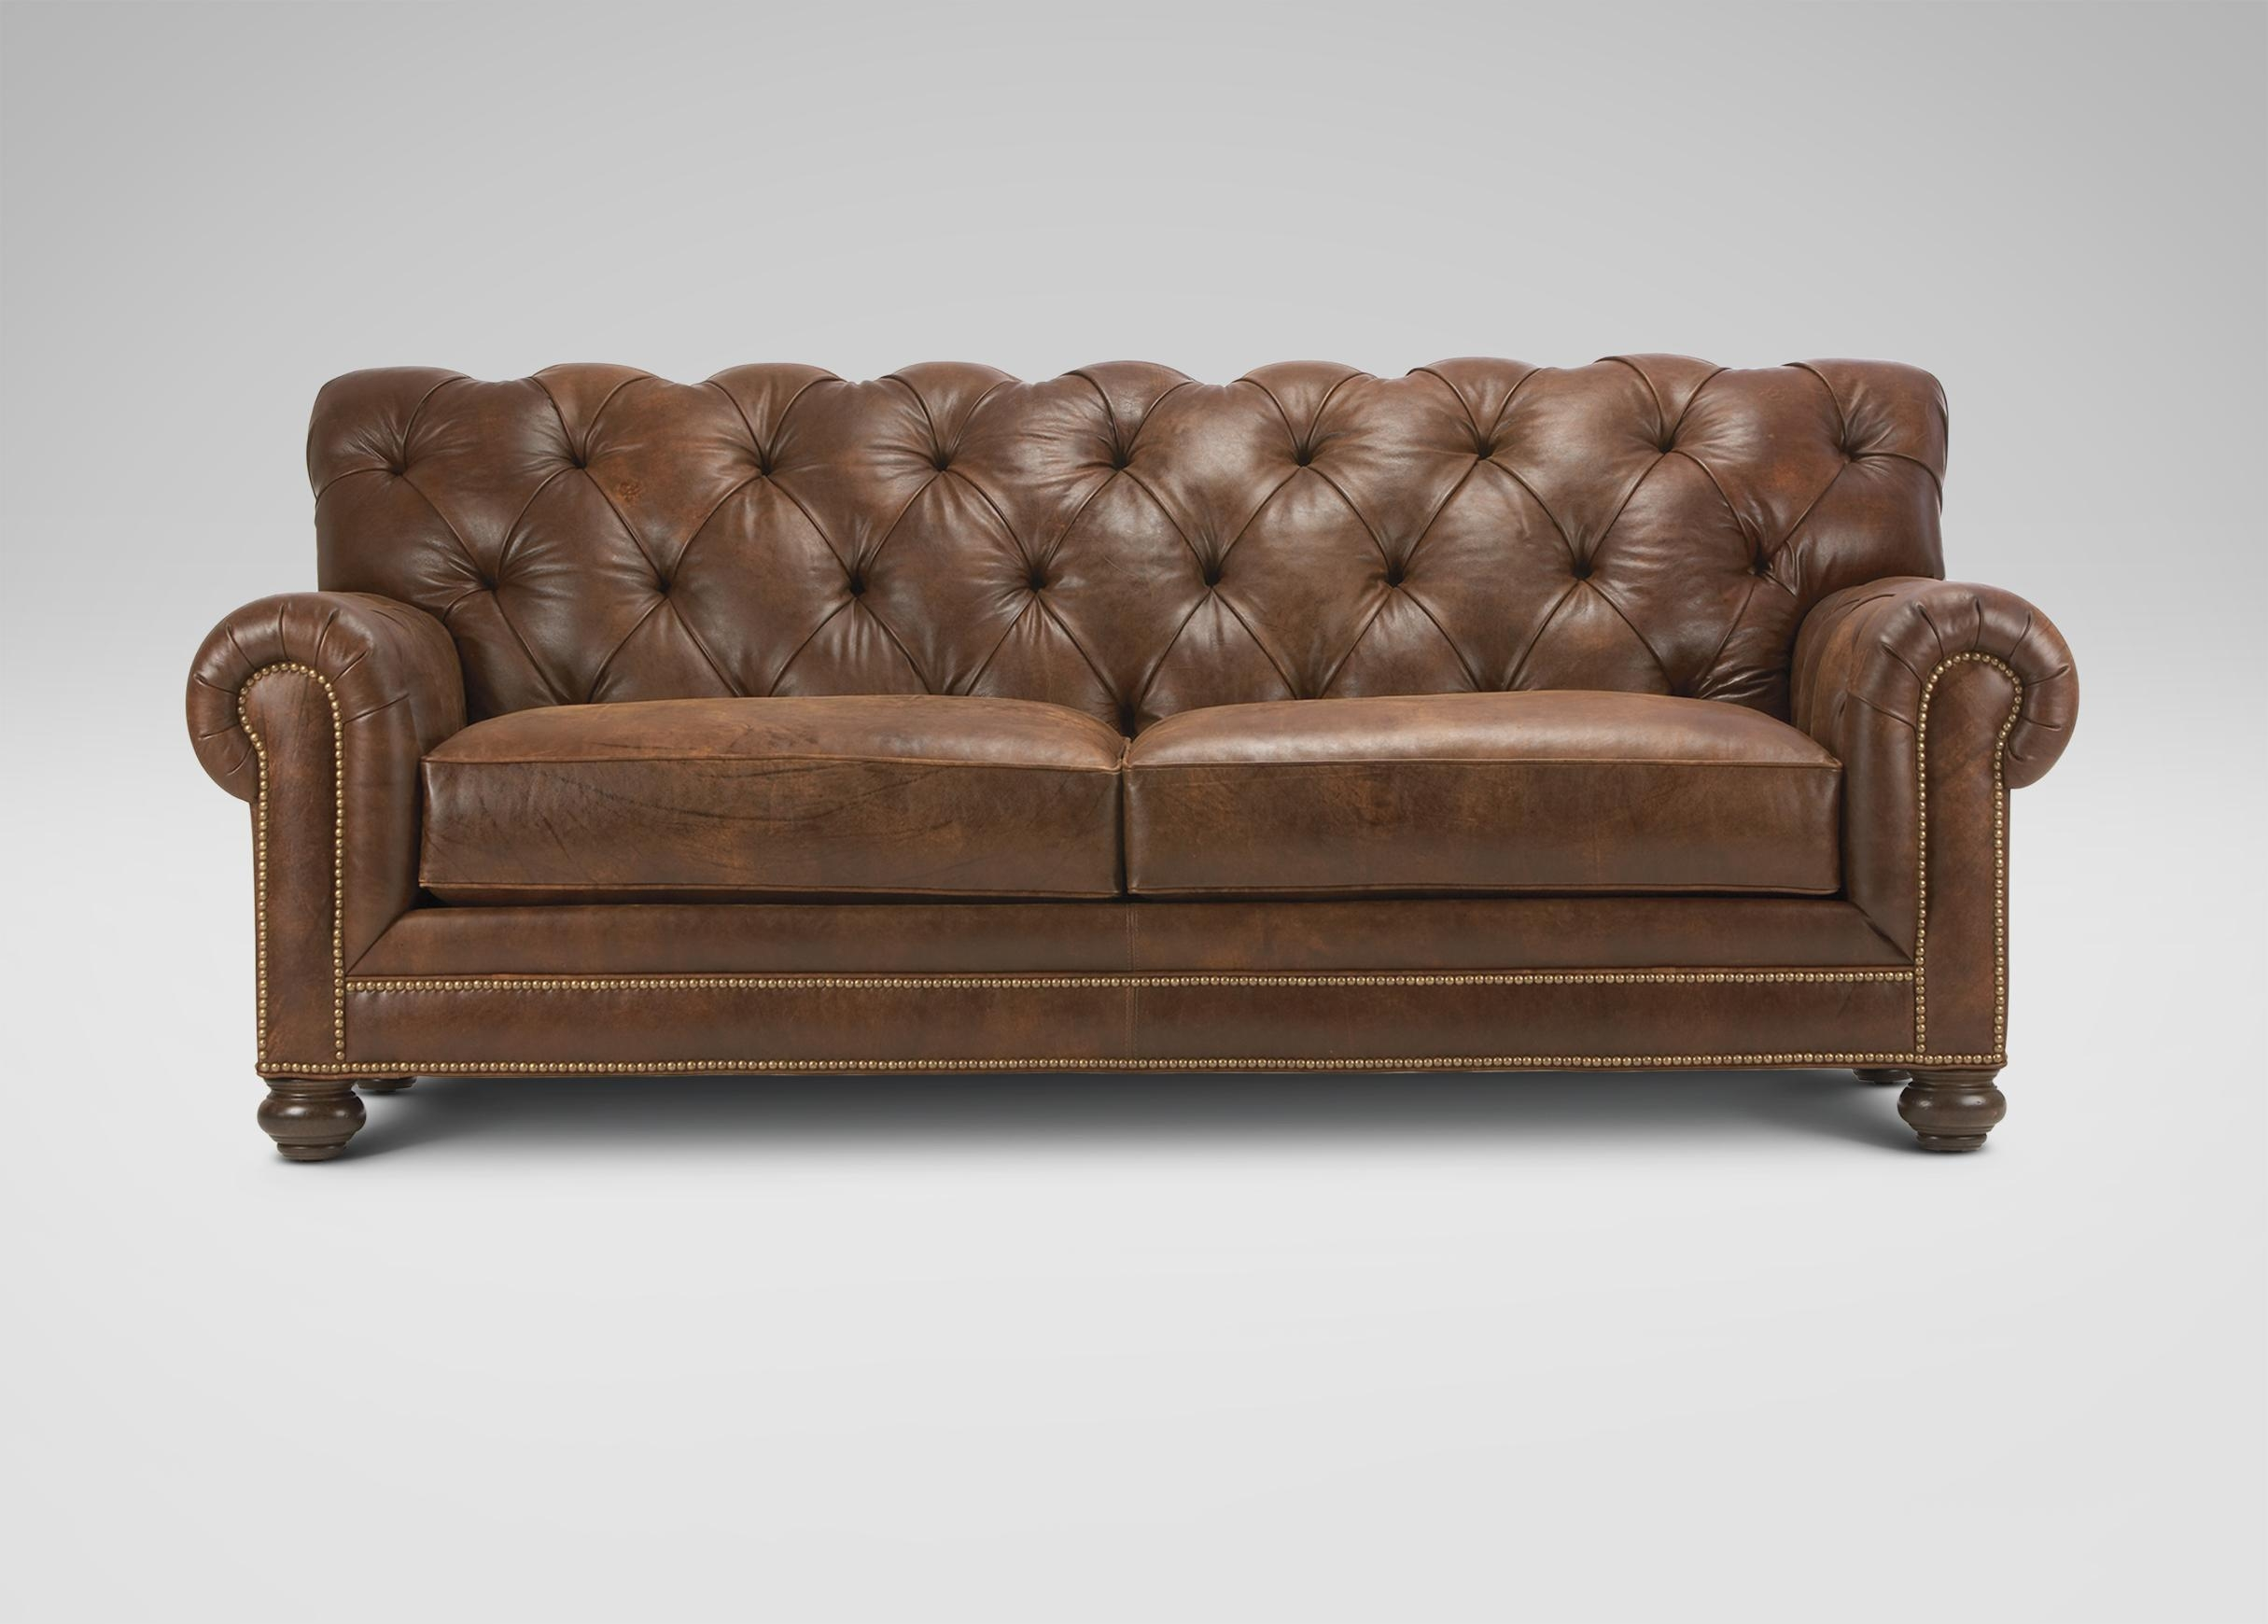 Chadwick Leather Sofa | Sofas & Loveseats Intended For Ethan Allen Chesterfield Sofas (View 3 of 20)